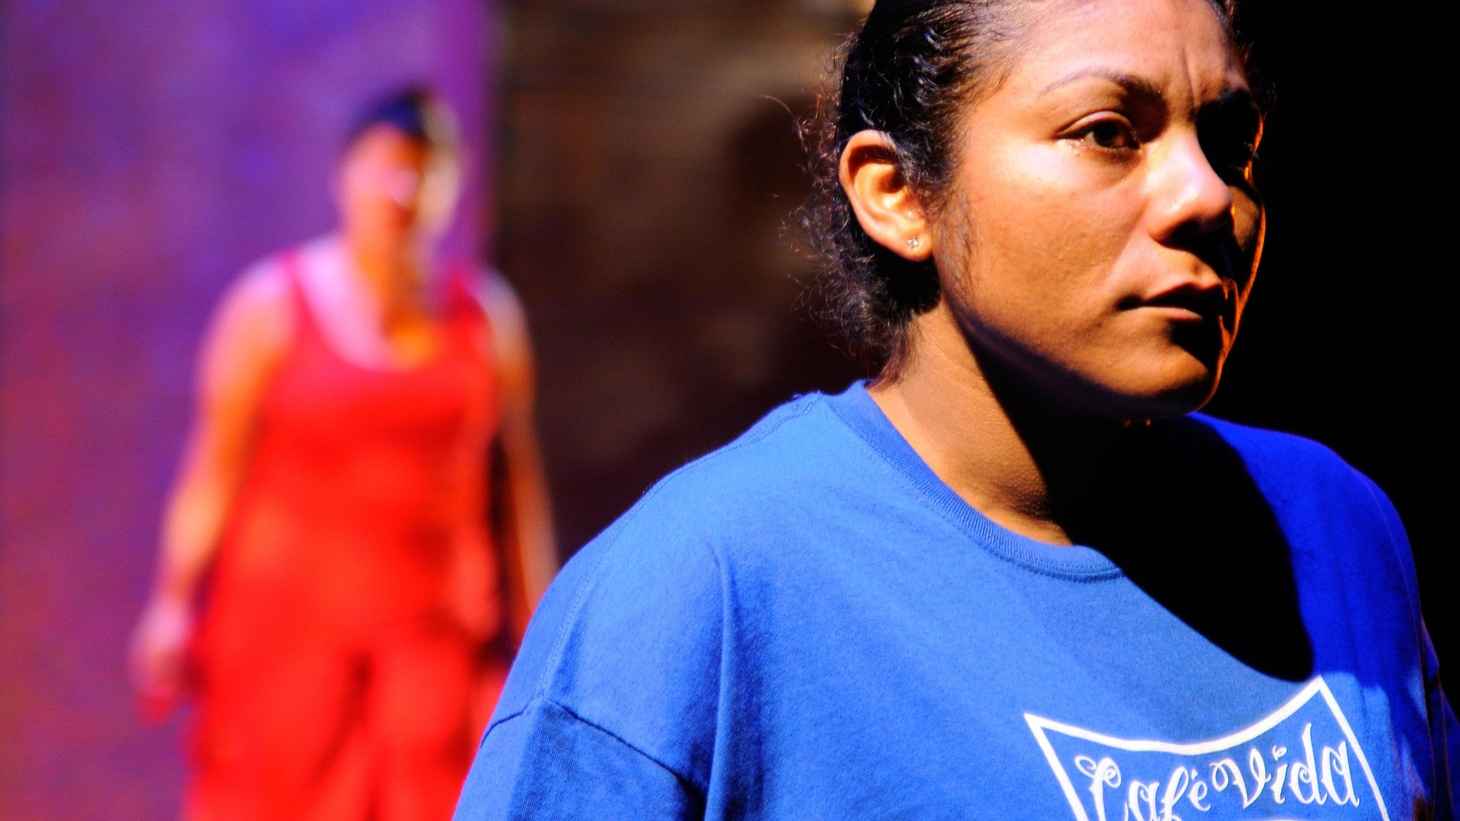 The Cornerstone Theater's latest production is produced in partnership with Father Greg Boyle and the Home Girl Cafe, which trains former gang members to run a restaurant.